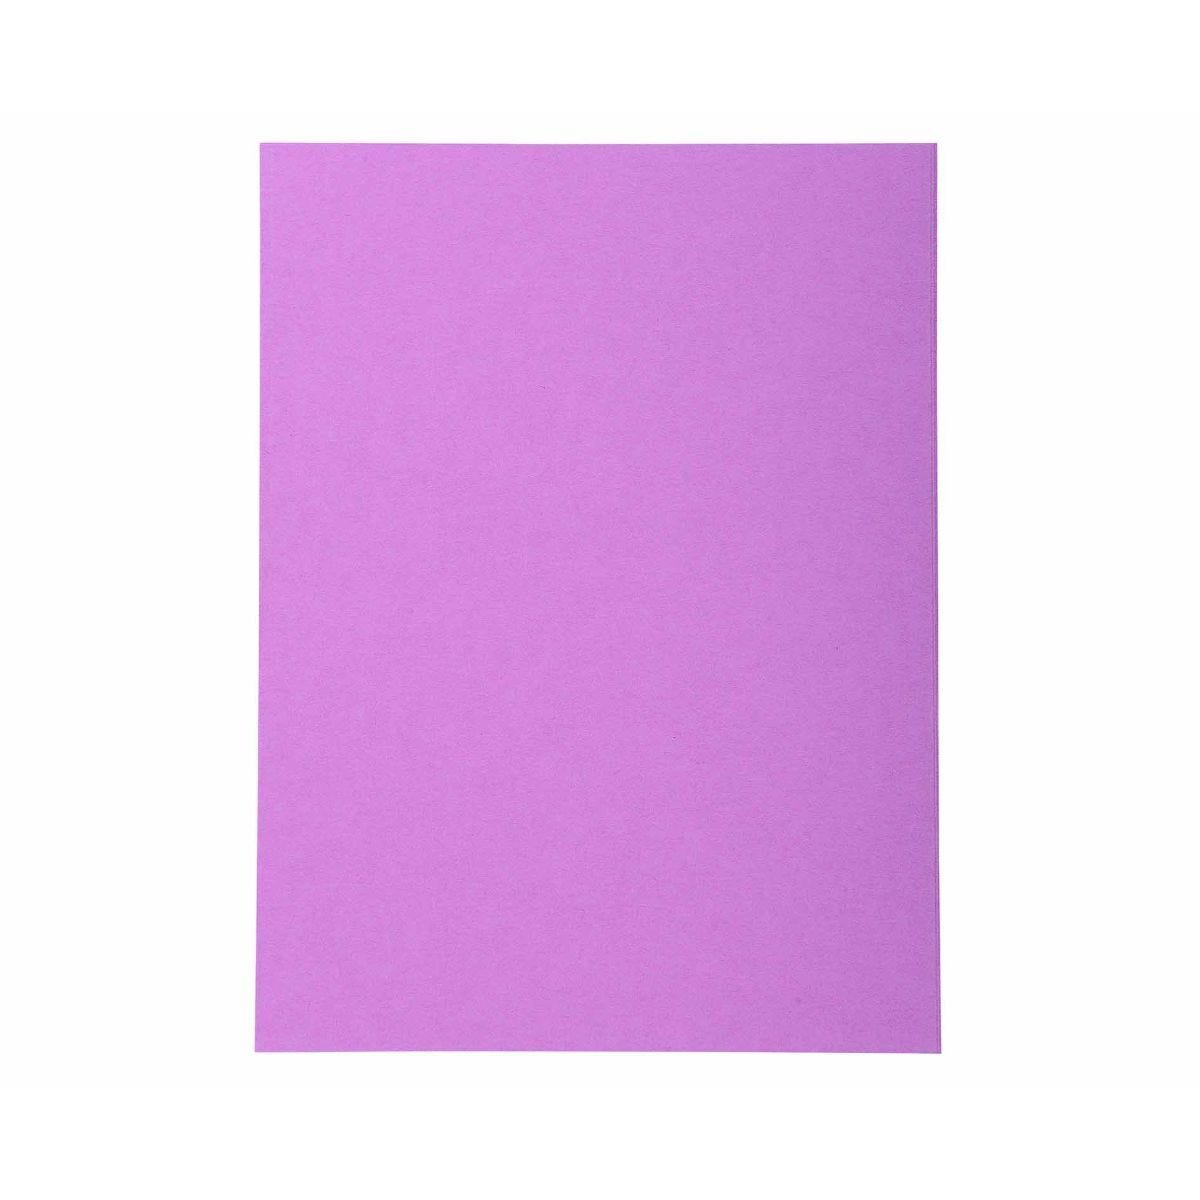 Exacompta Forever Folders Square Cut A4 5 Packs of 100 Purple